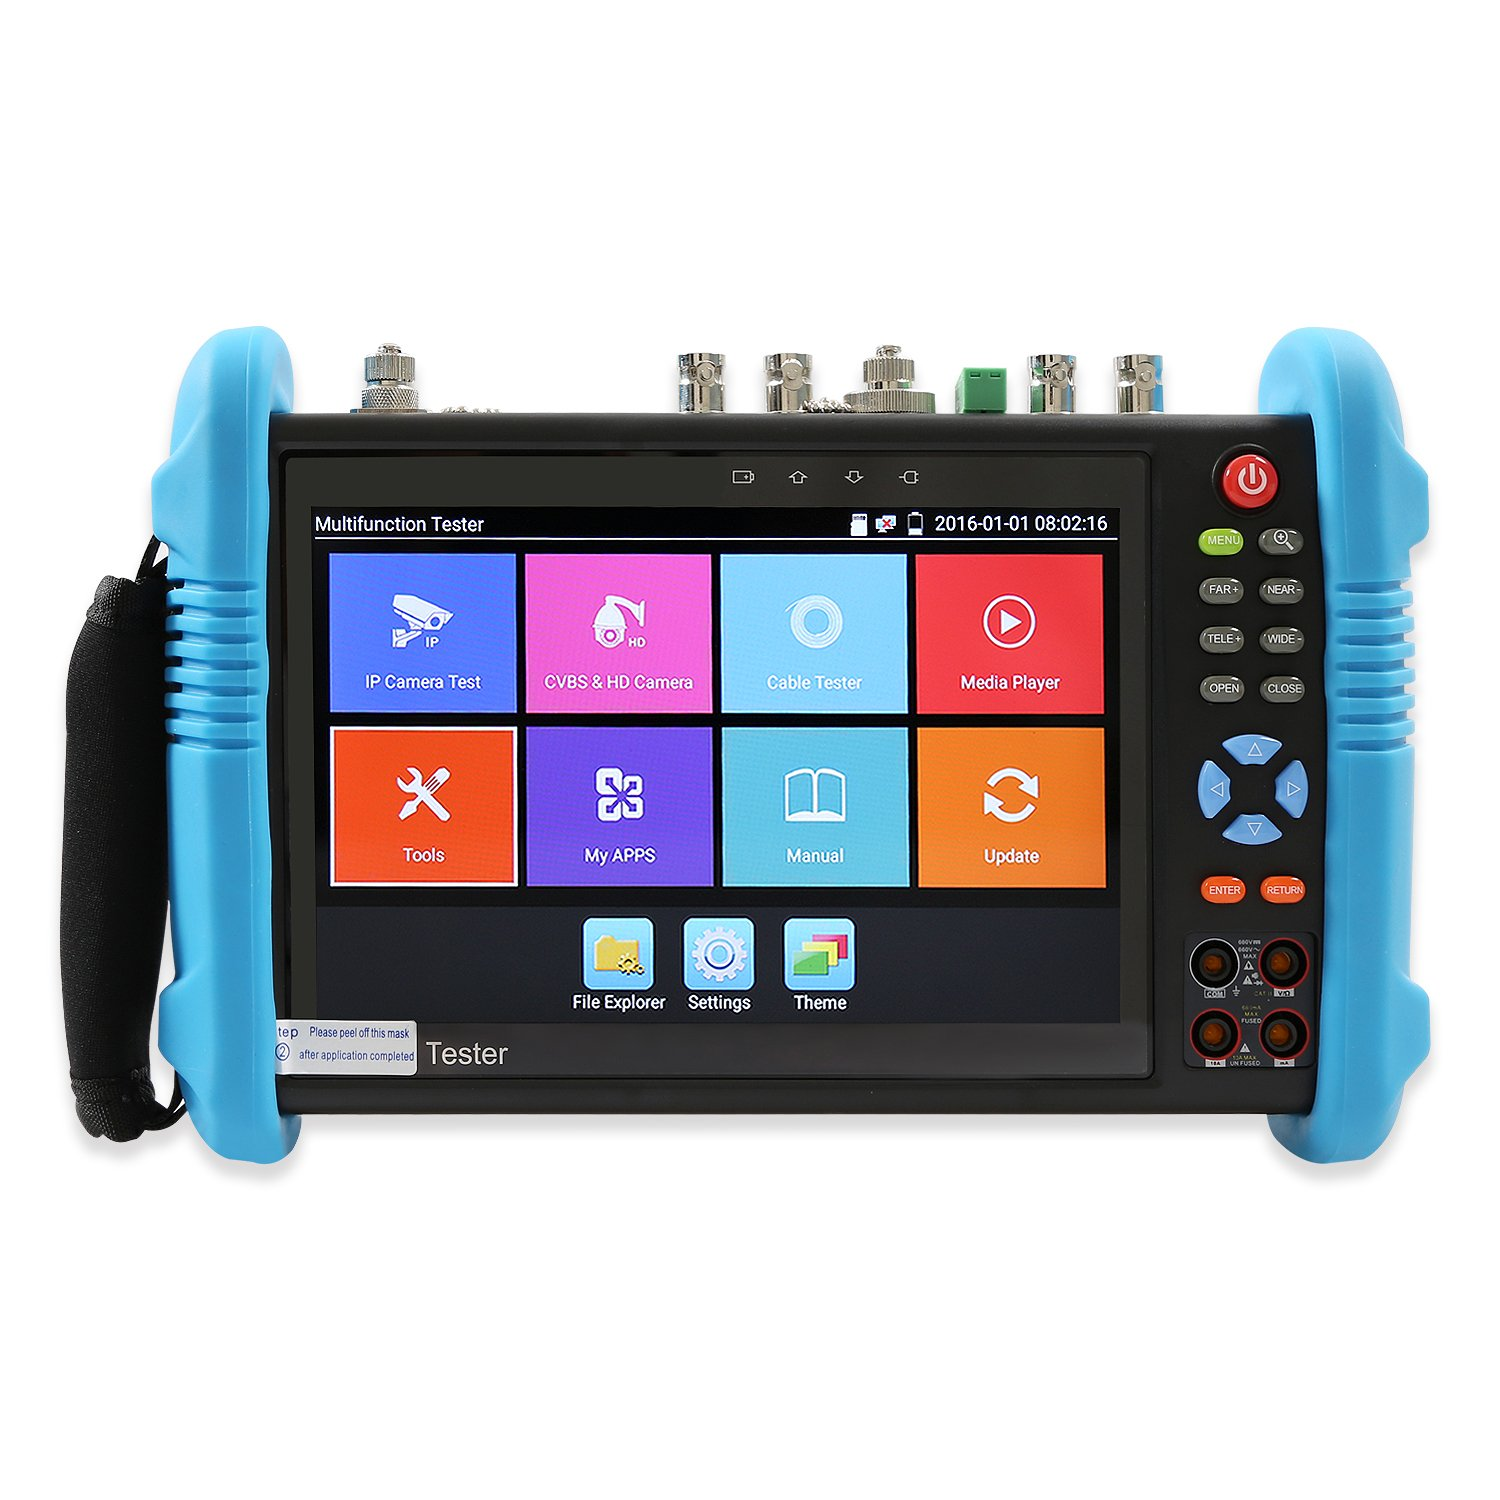 Wsdcam 7 Inch All in One IPS Touch Screen IP Camera Tester Security CCTV Tester Monitor with SDI/TVI/AHD/CVI/TDR/OPM/VFL/POE/WIFI/4K H.265/1080p HDMI in&Out/Firmware Upgraded 9800MOVTSADH-Plus by wsdcam